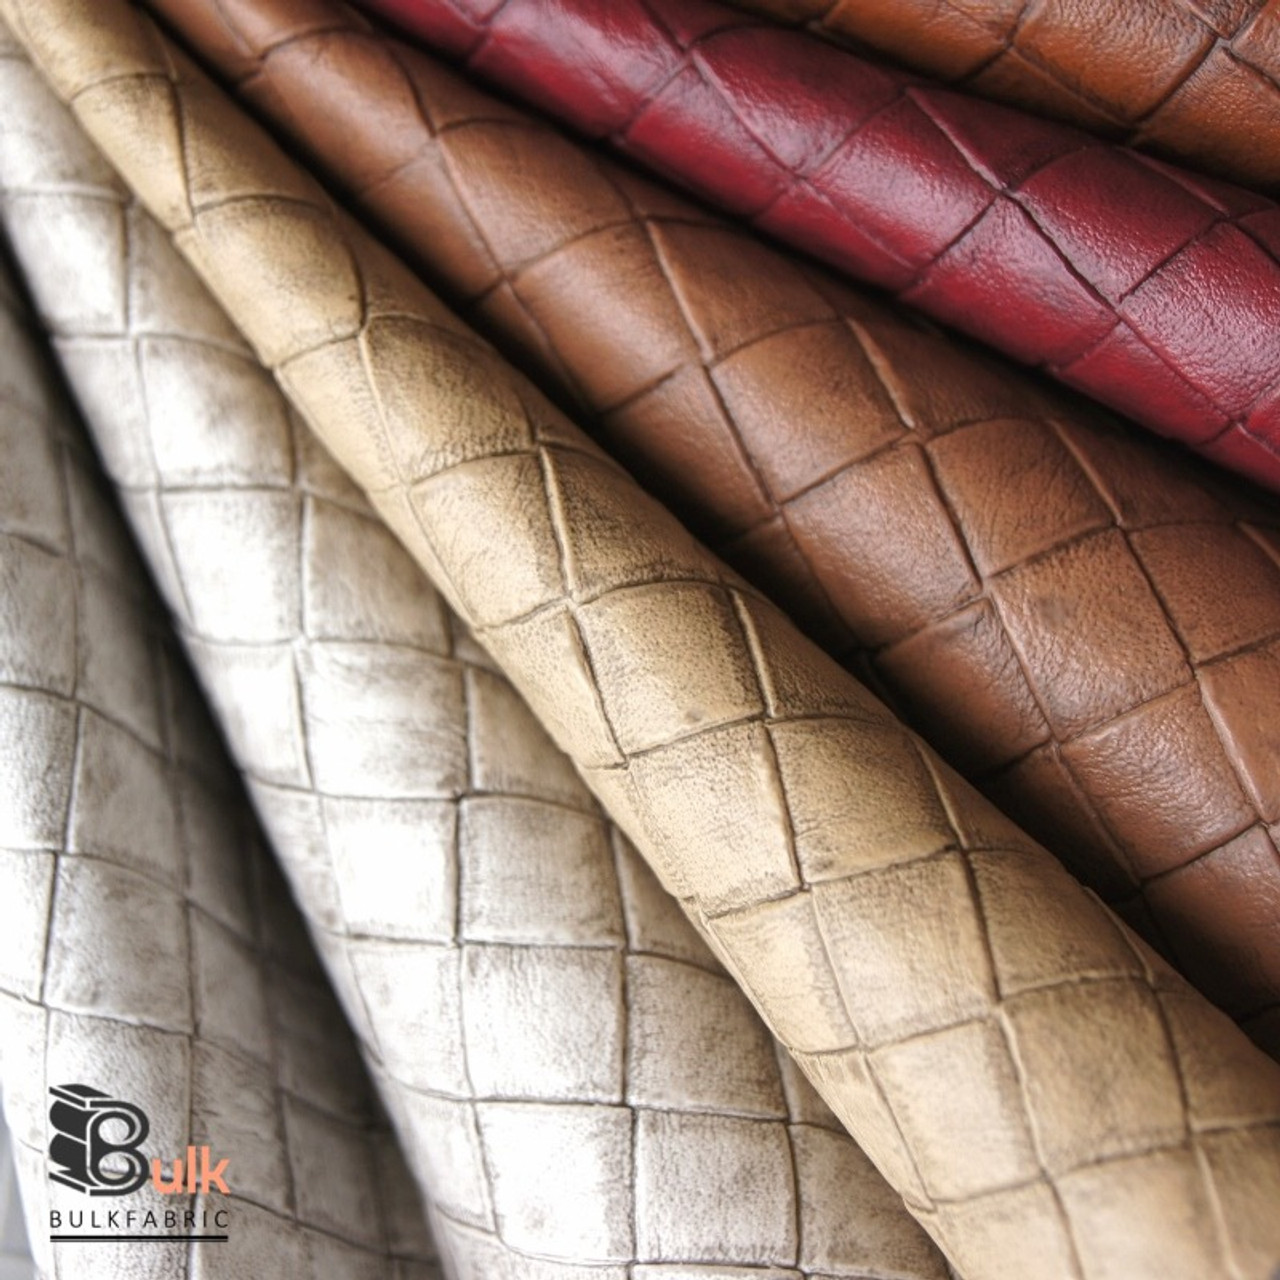 basketweave tile leather like fabric faux leather basket weave upholstery wholesale 25 yards roll